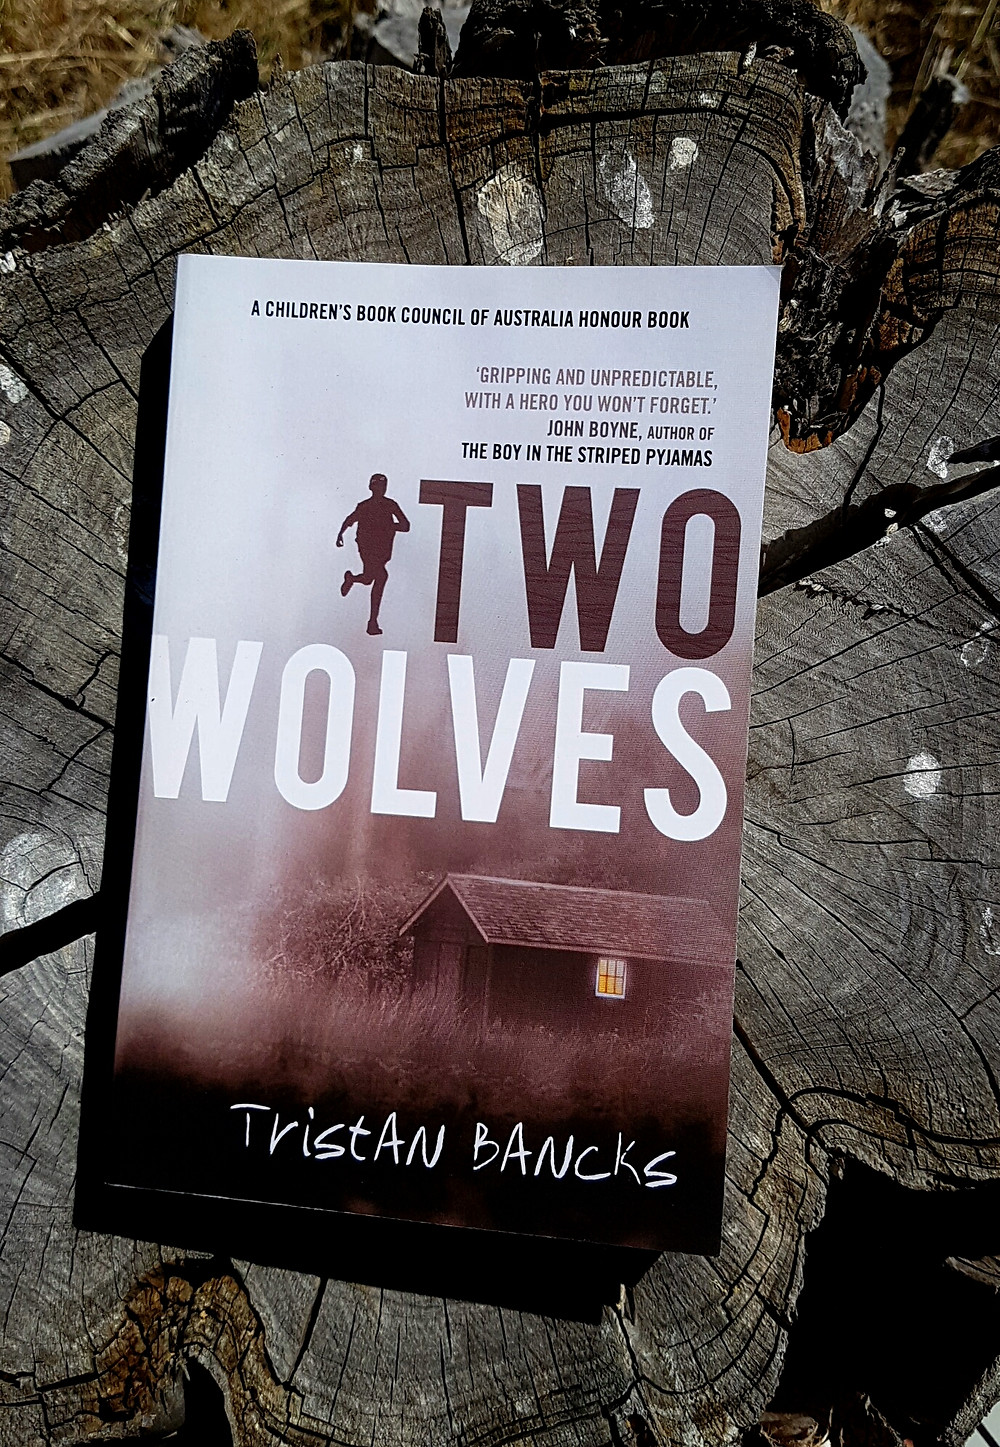 Photo of Two Wolves, Tristan Bancks.